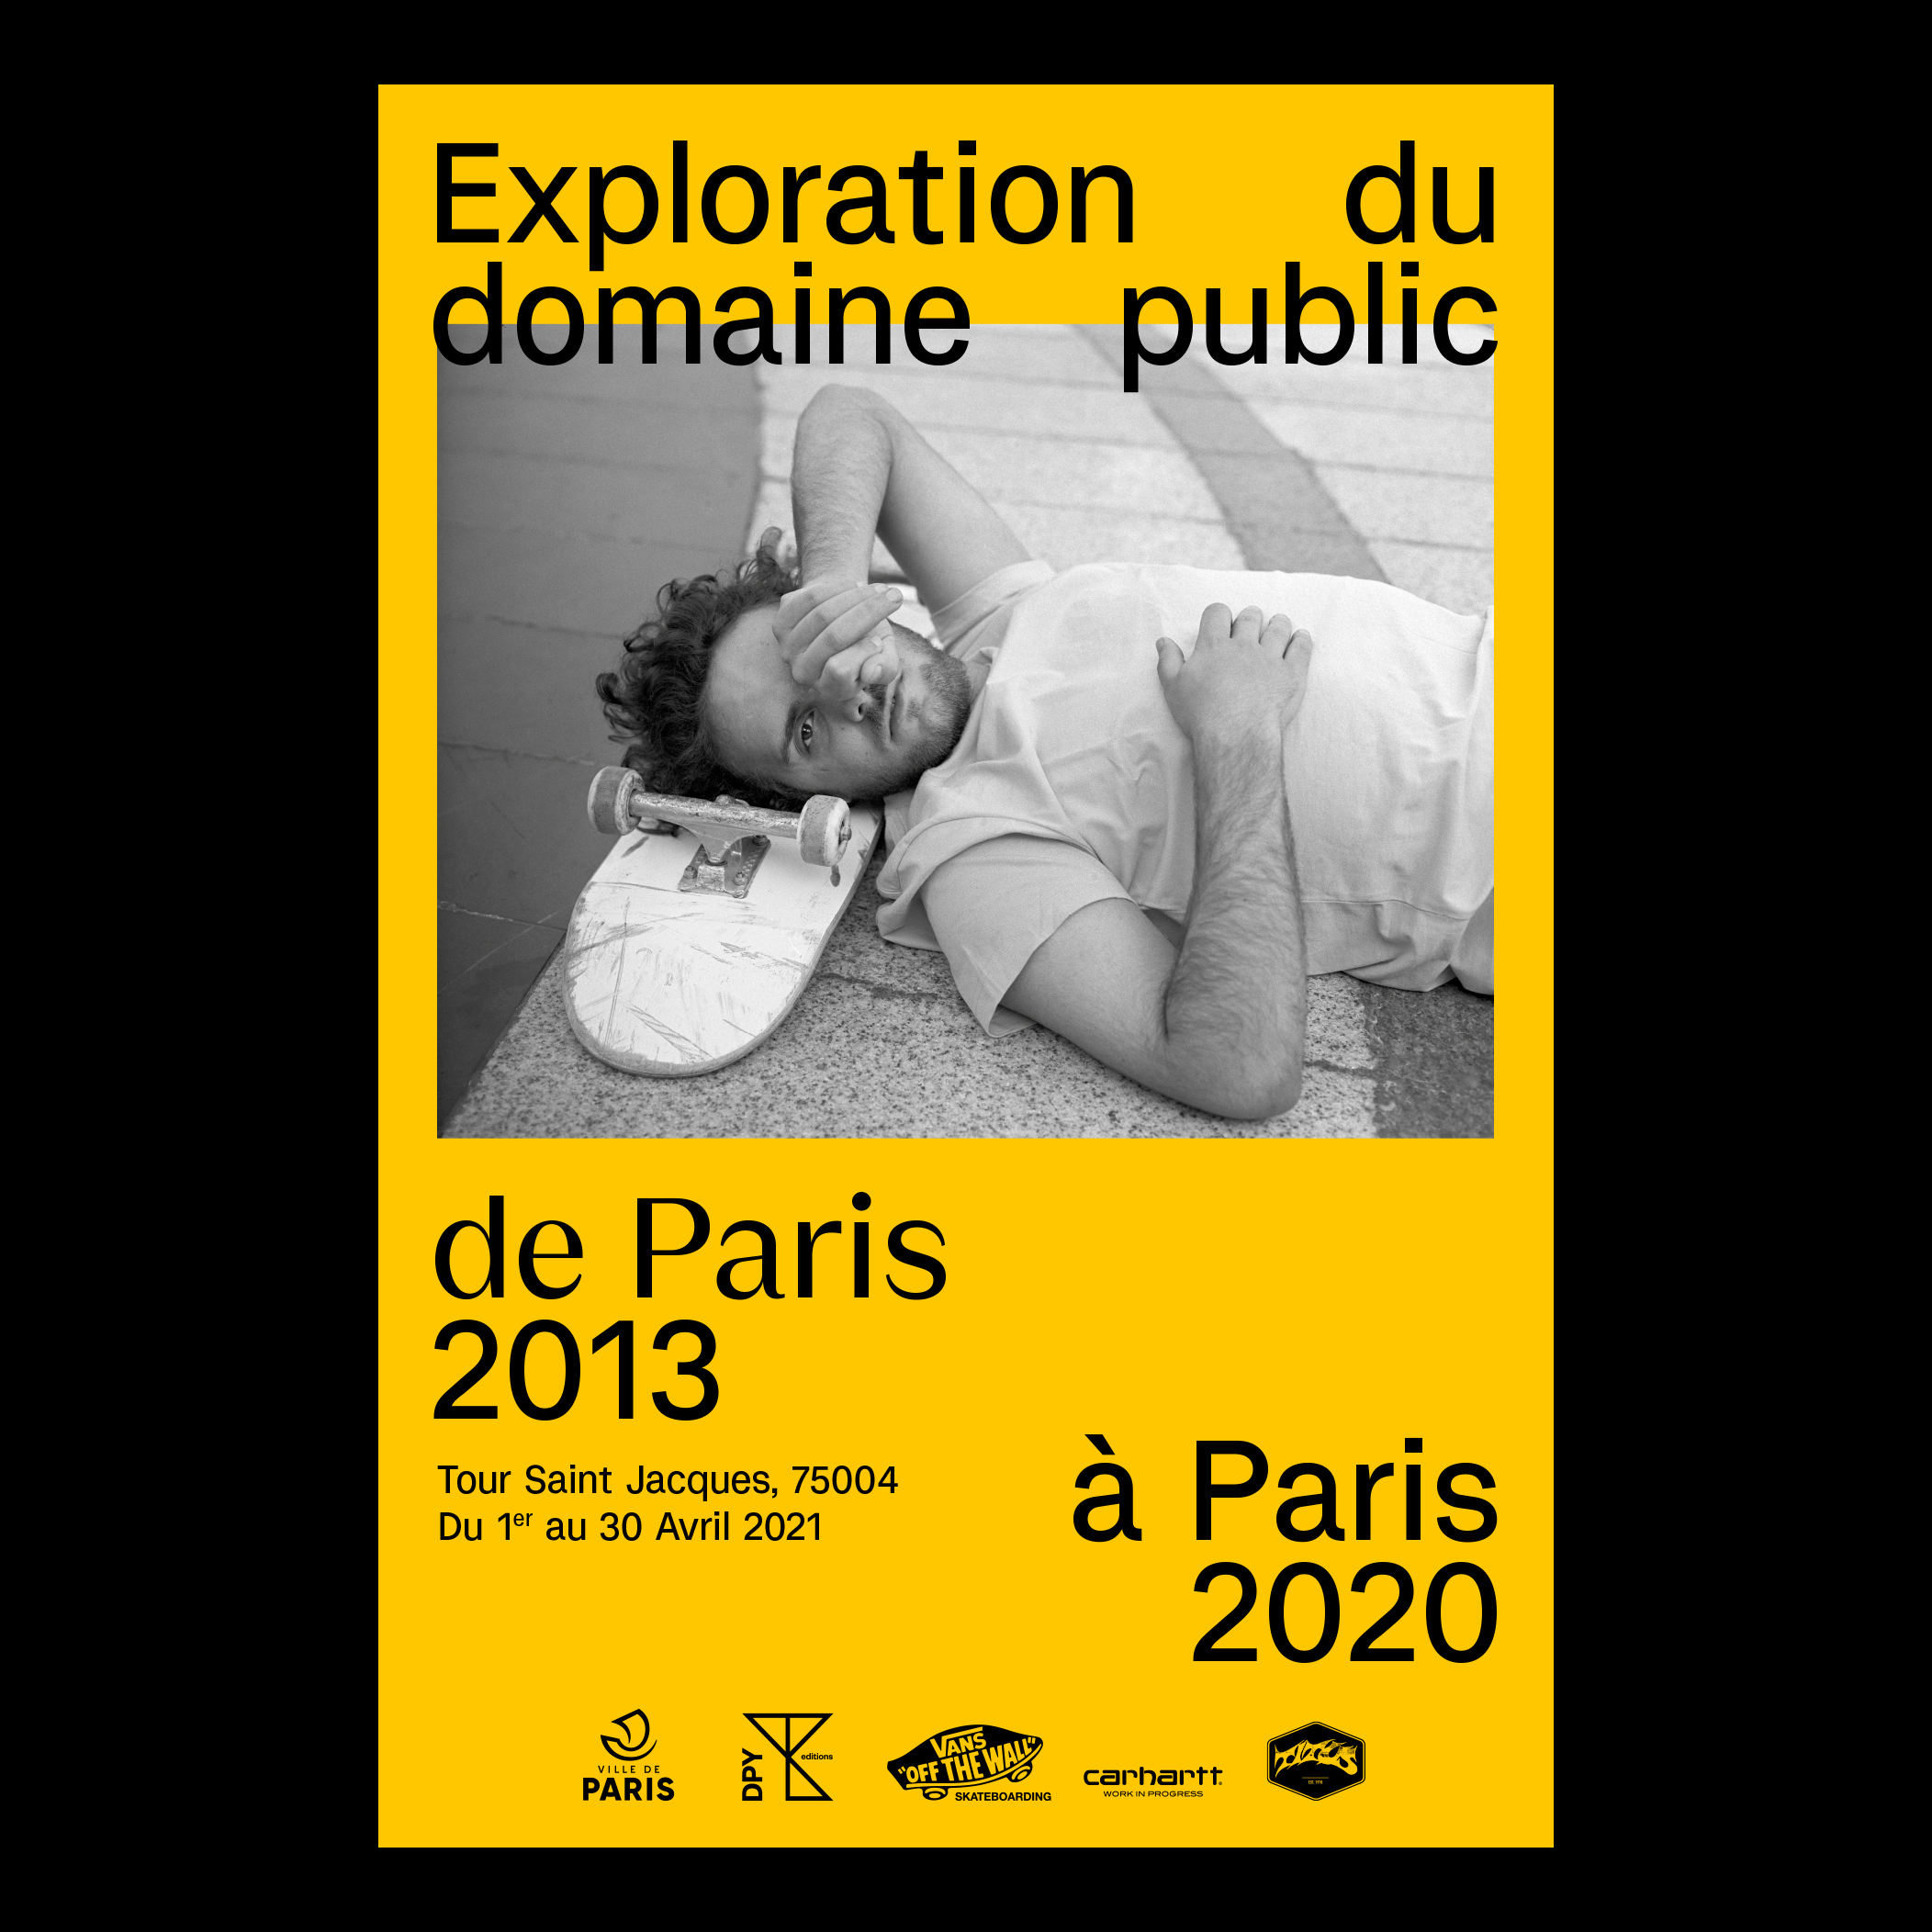 affiche_EXPO_DPY-1.jpg